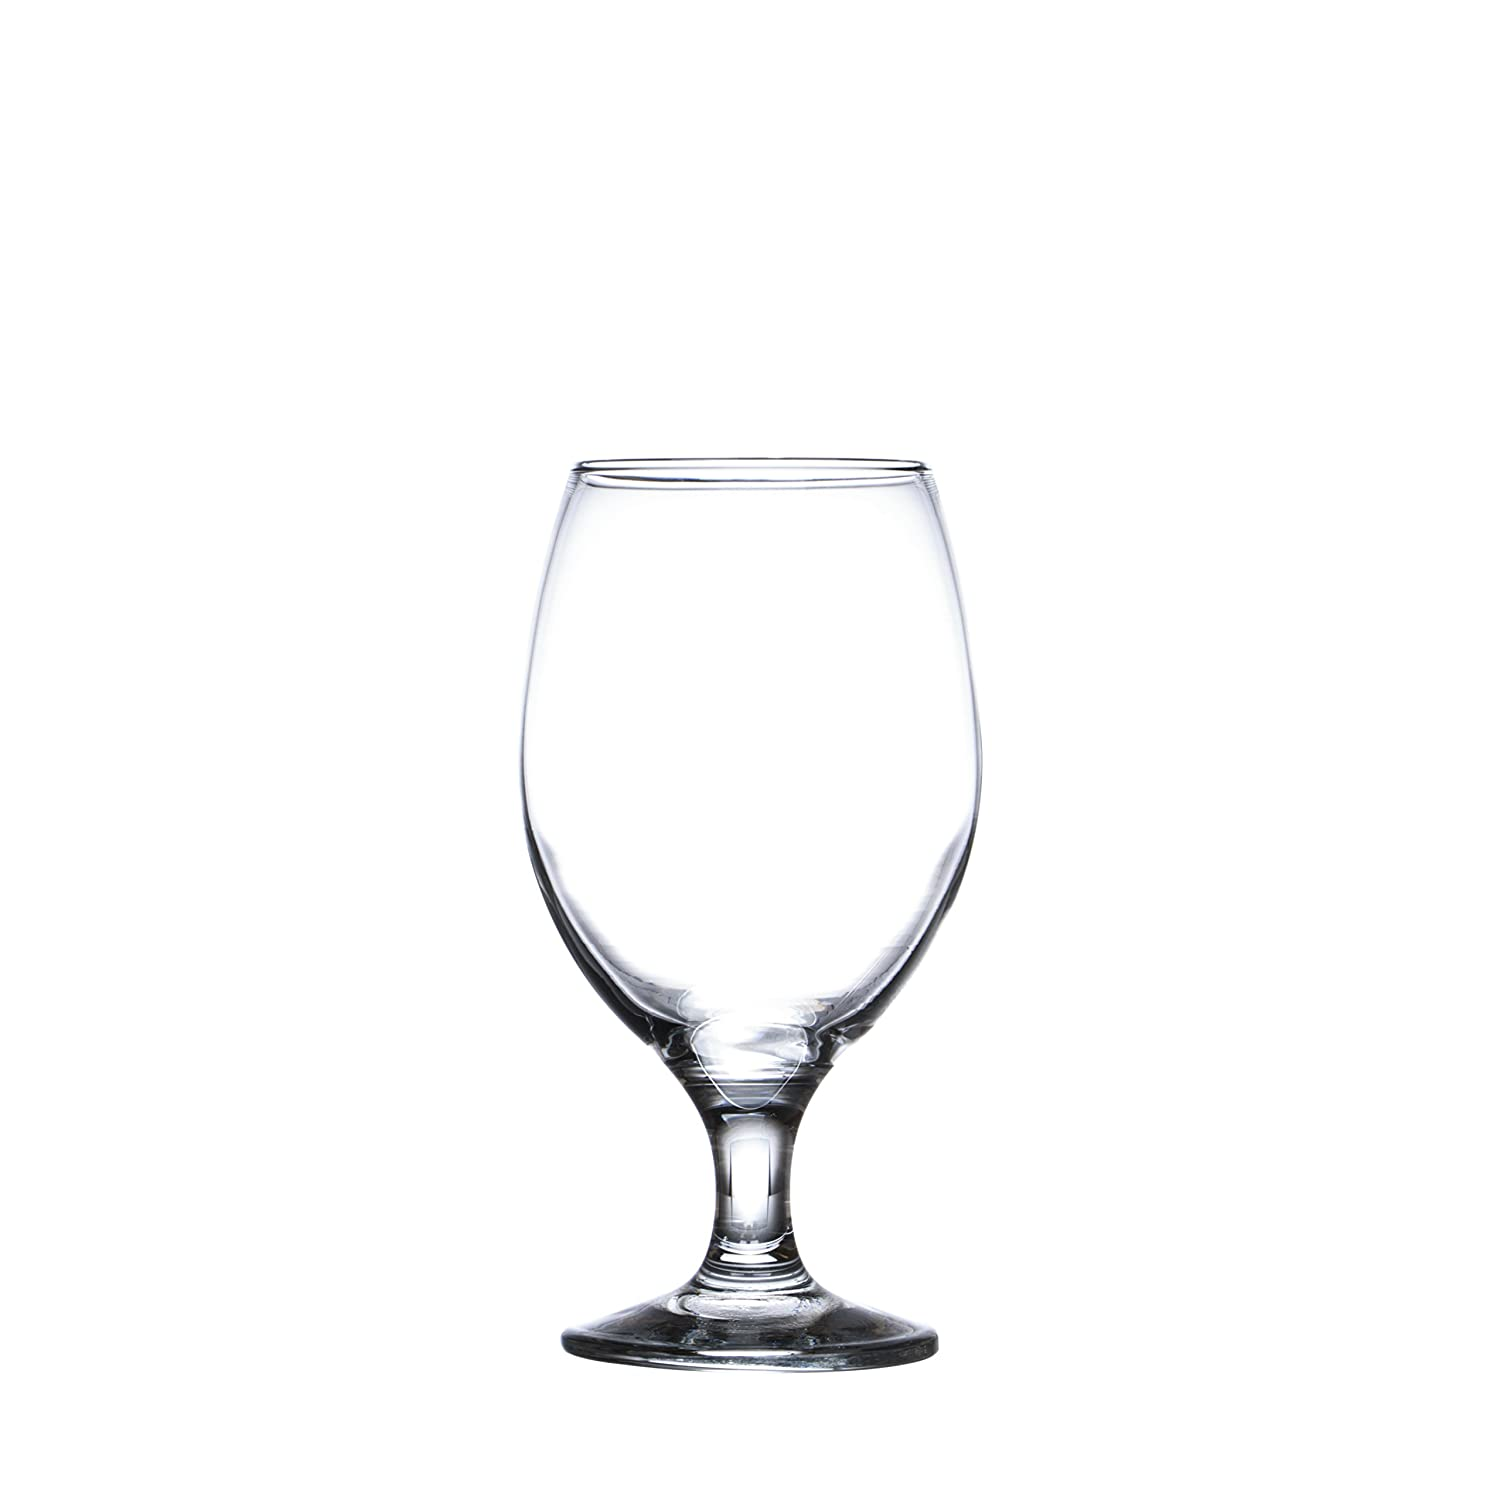 Restaurant/&Hotel Quality 13.5 Oz Durable Tempered Glass BISTRO 12-Piece Water//Beverage Glasses Set